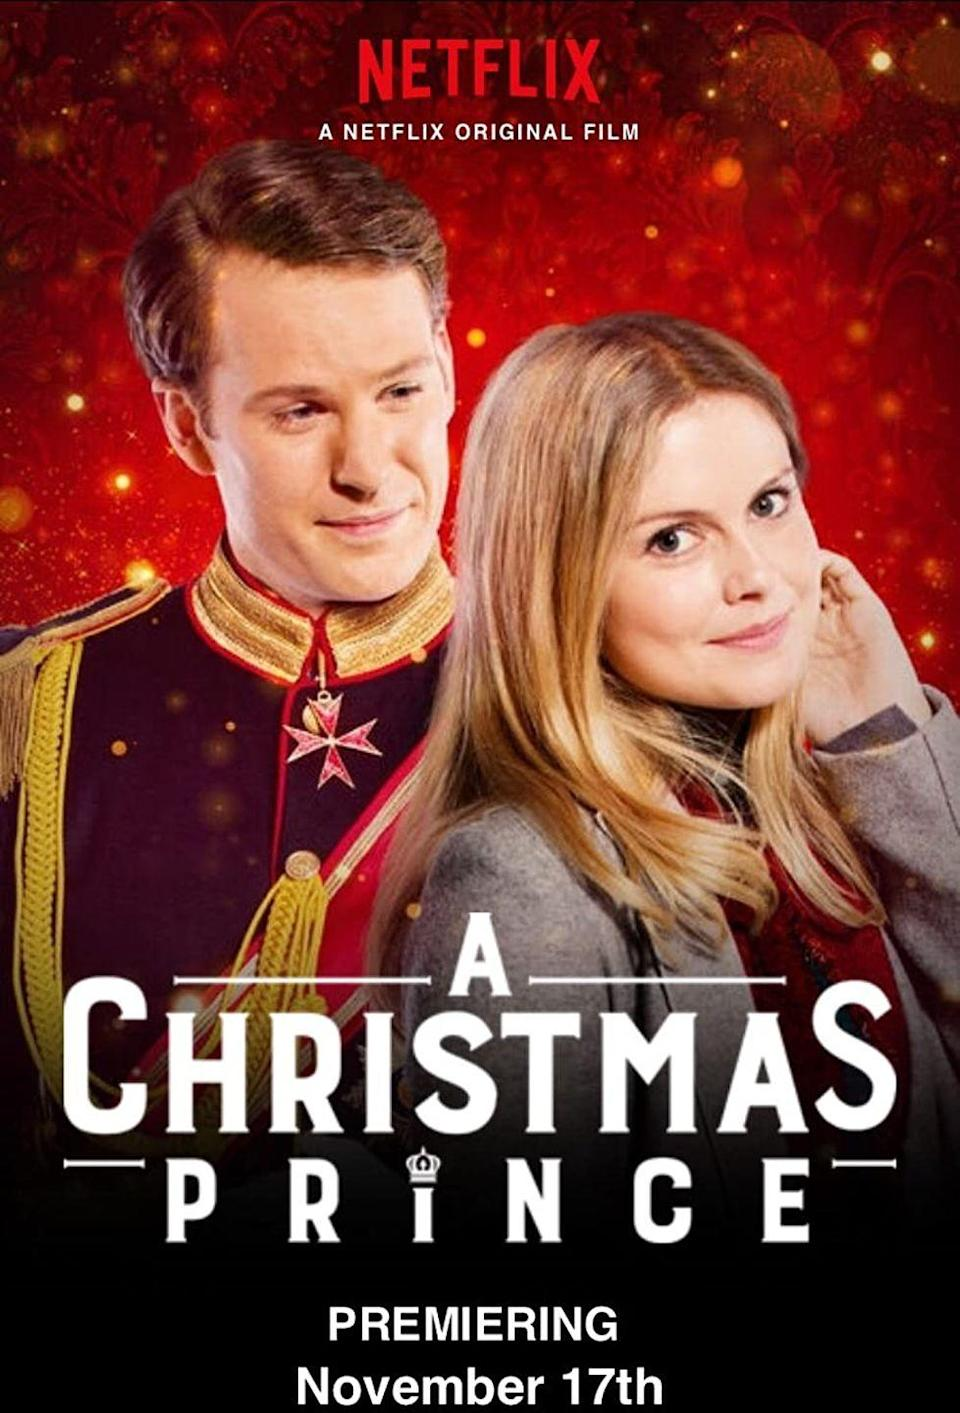 """<p>The Netflix Christmas original that started it all,<em> The Christmas Prince</em> took the internet by storm in 2017. The holiday rom-com follows journalist Amber Moore as she travels to Aldovia to cover the crown prince's ascension to the royal throne. She goes undercover to report on the story...and ends up falling for the prince in the process (because, of course she does).</p><p>But will they get their snow-capped happily ever after? You'll just have to tune in to find out.</p><p><a class=""""link rapid-noclick-resp"""" href=""""https://www.netflix.com/watch/80160759"""" rel=""""nofollow noopener"""" target=""""_blank"""" data-ylk=""""slk:Watch Now"""">Watch Now</a></p>"""